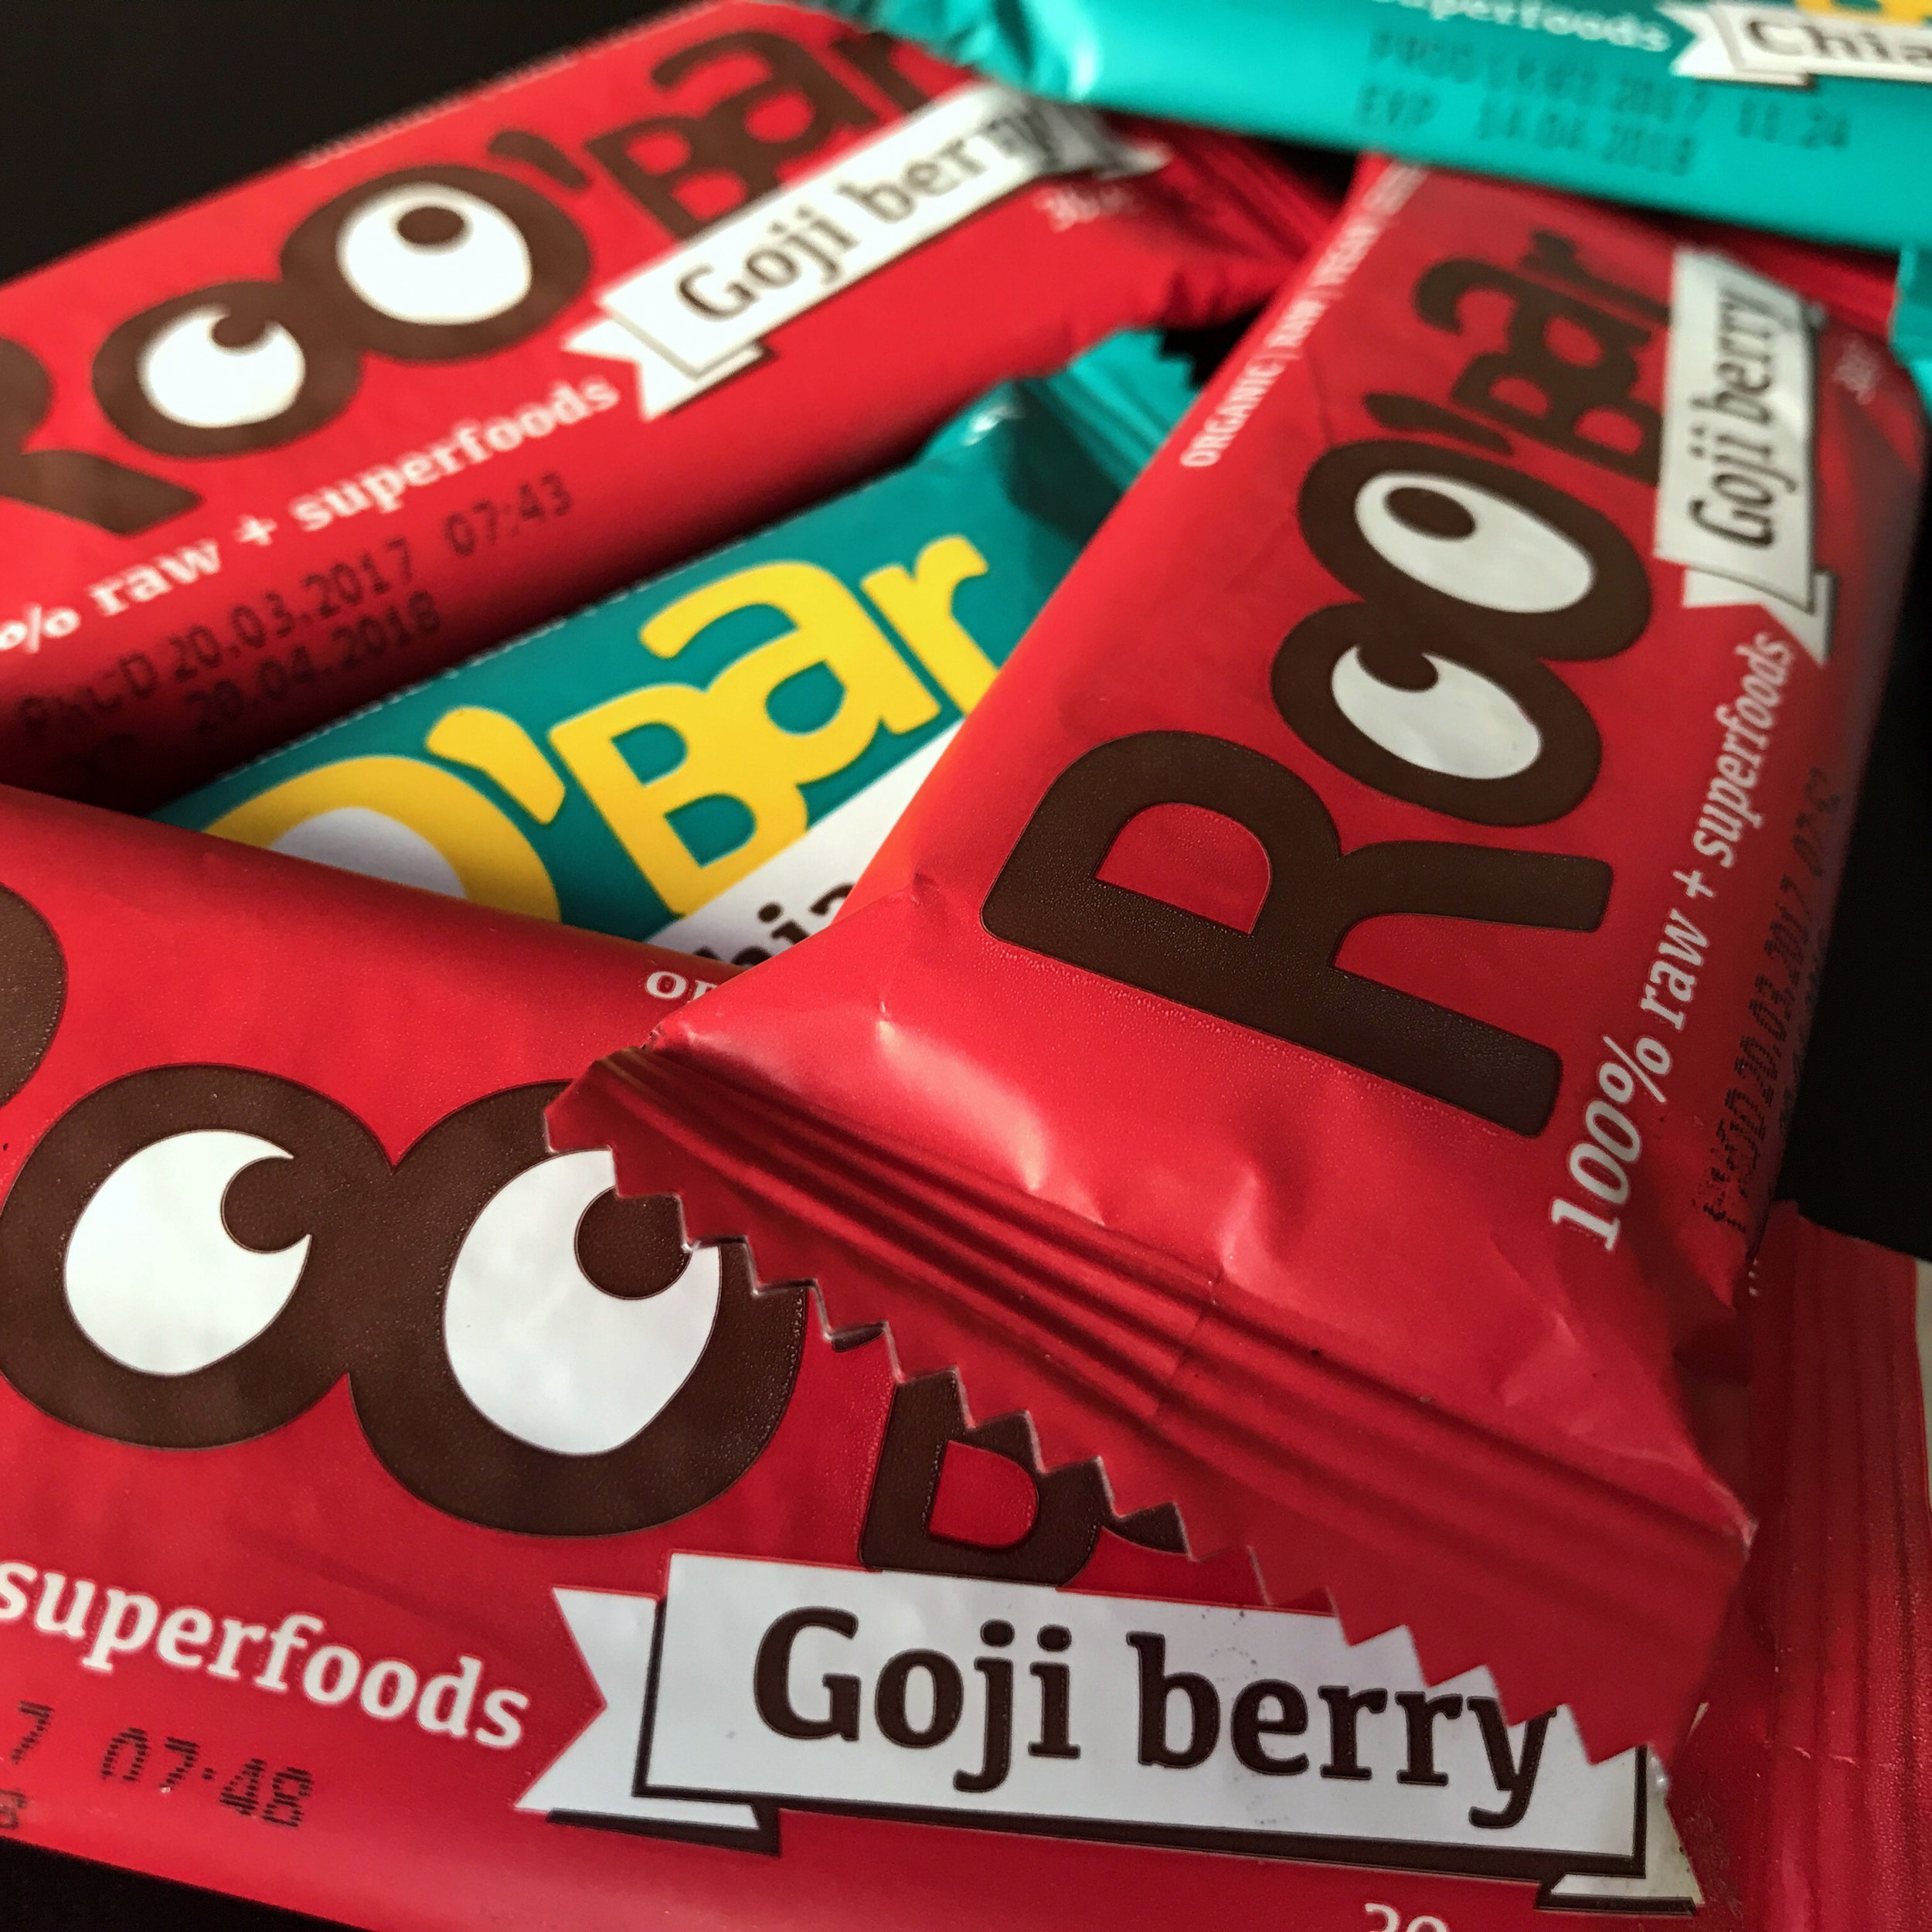 Roo Bar - Each bar is packed with superfoods to boost your body and mind with maximum nutrients.